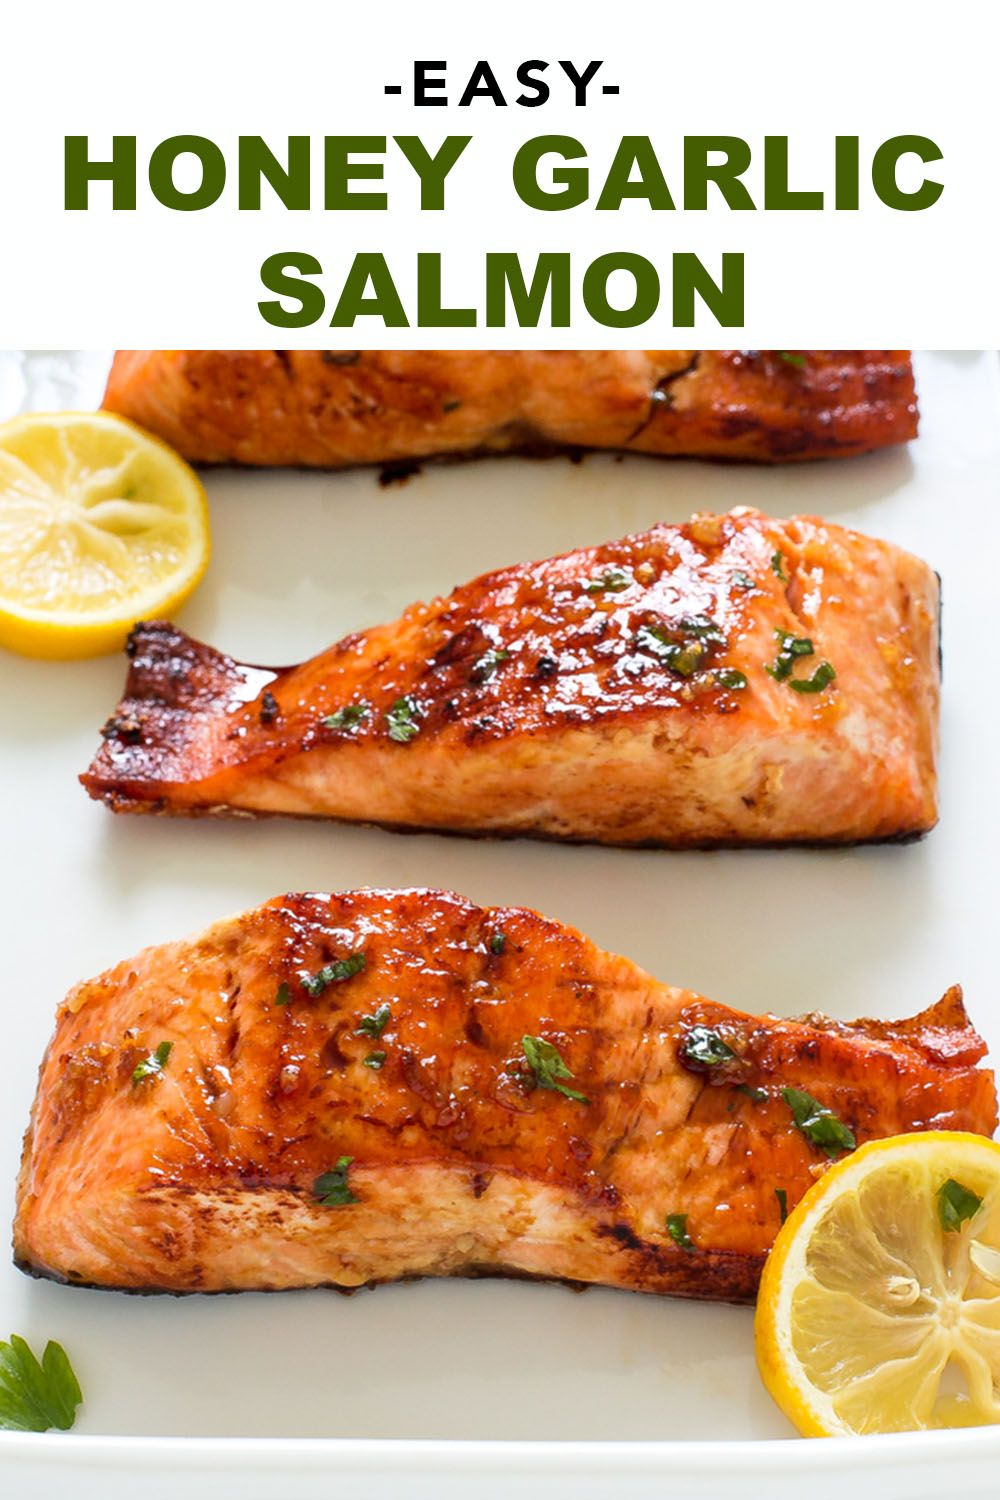 Photo of Honey Garlic Salmon